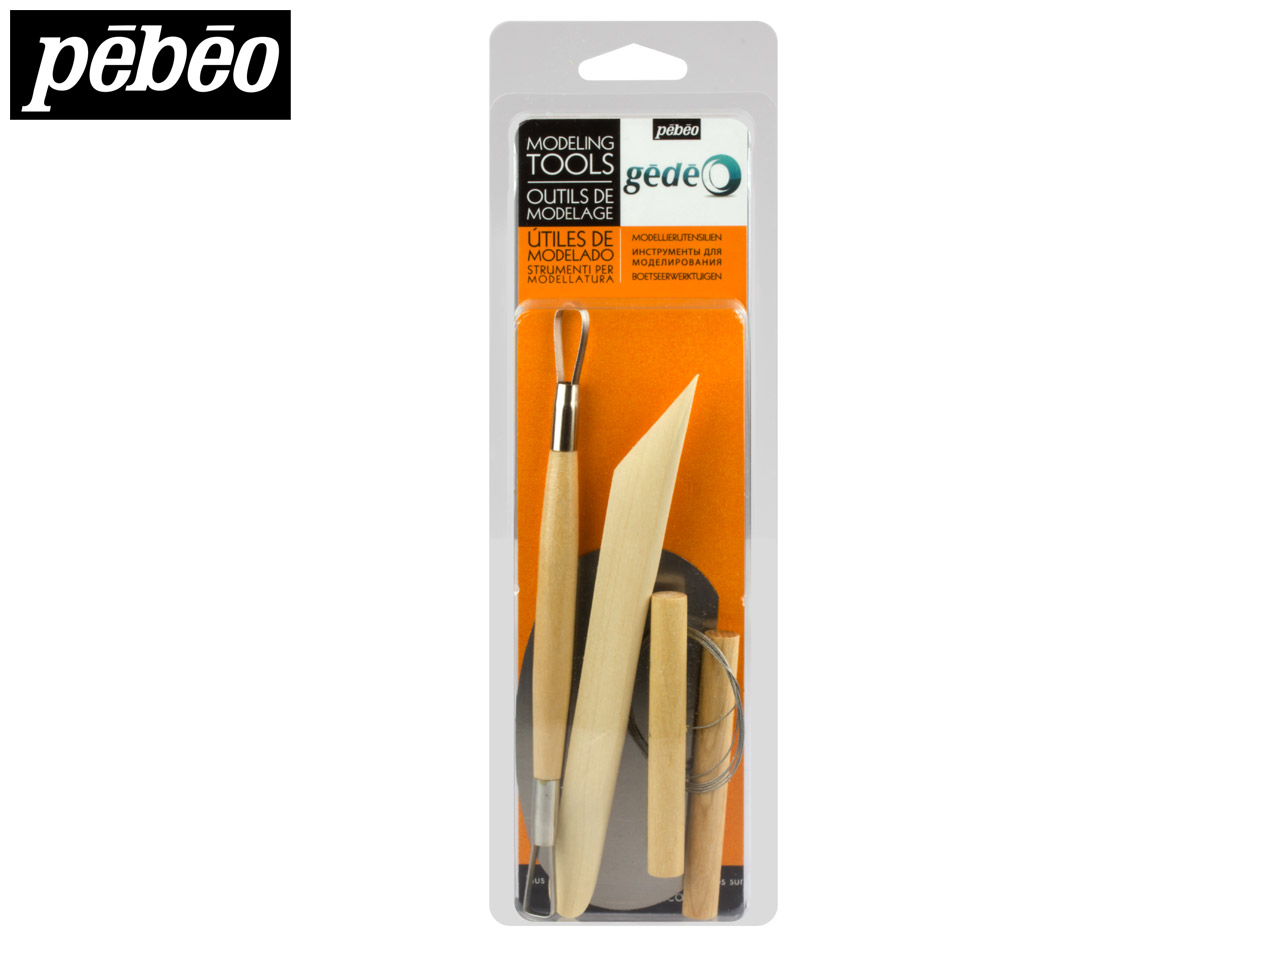 Gedeo 4 piece Modelling Tool Set